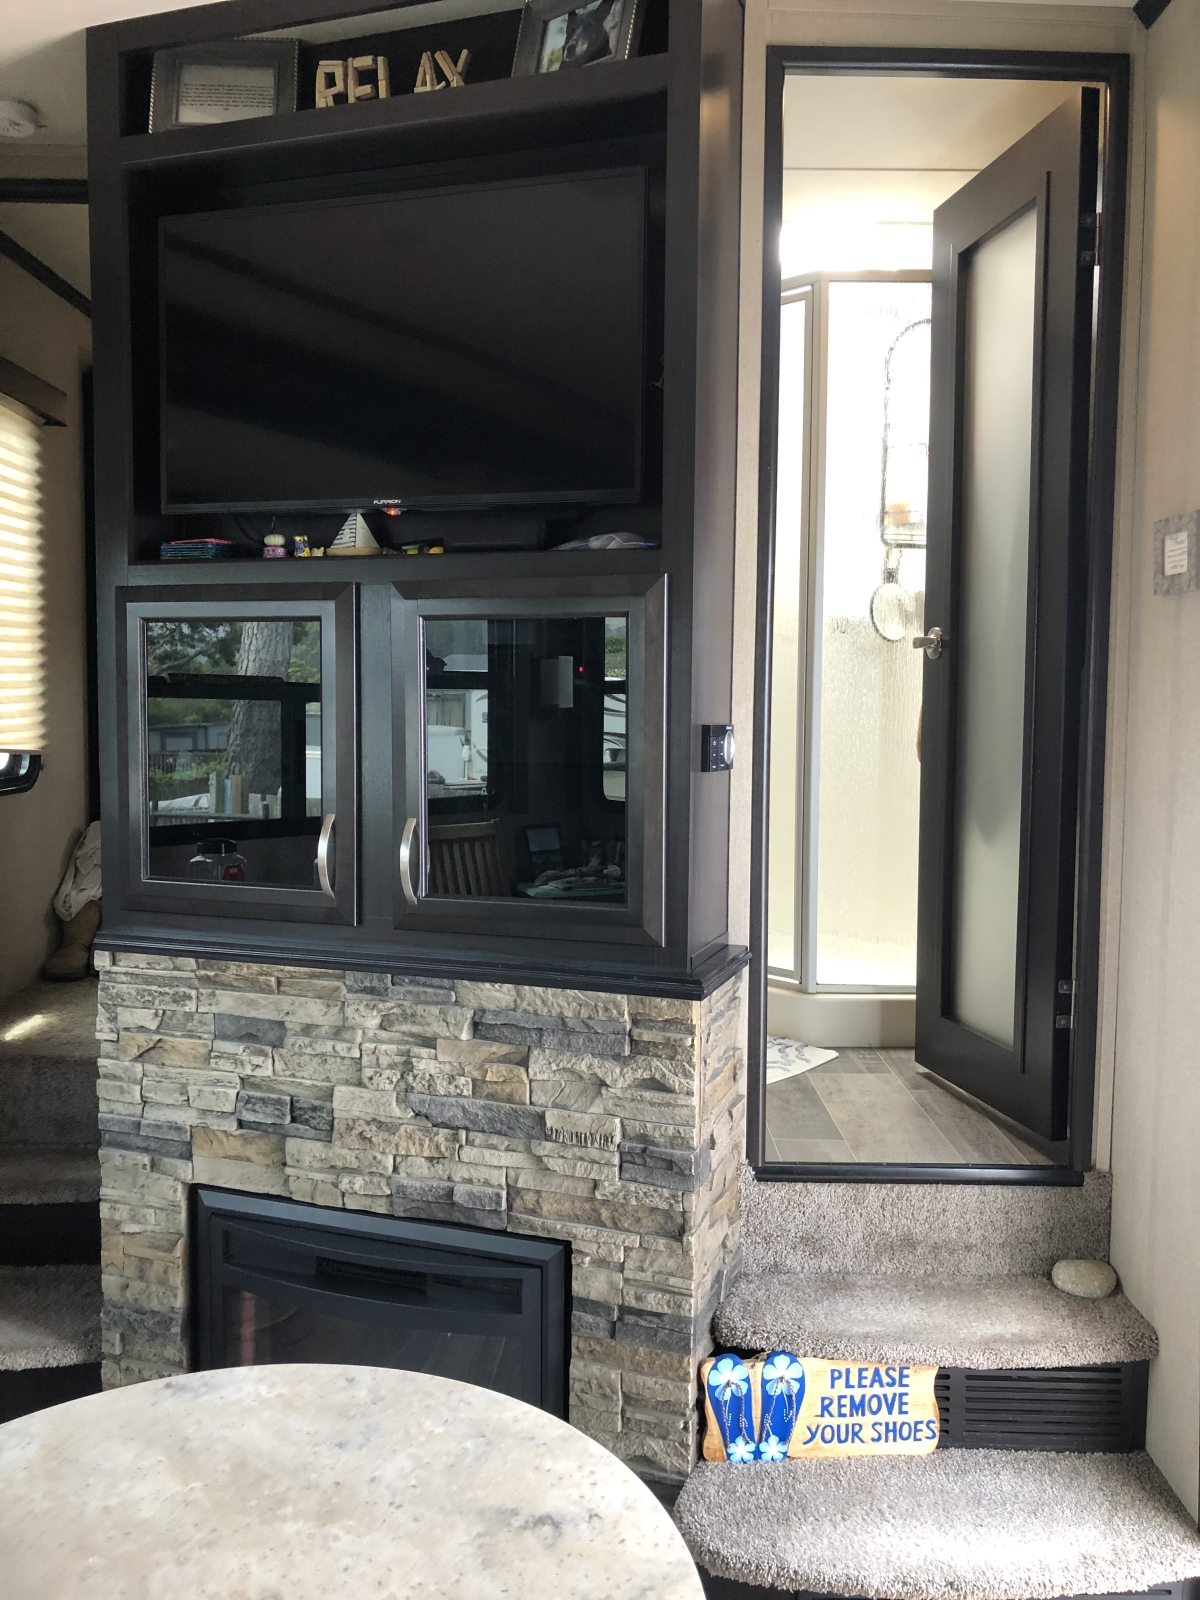 For Sale: 5TH WHEEL TOY HAULER 2018 VOLTAGE 39FT - photo15